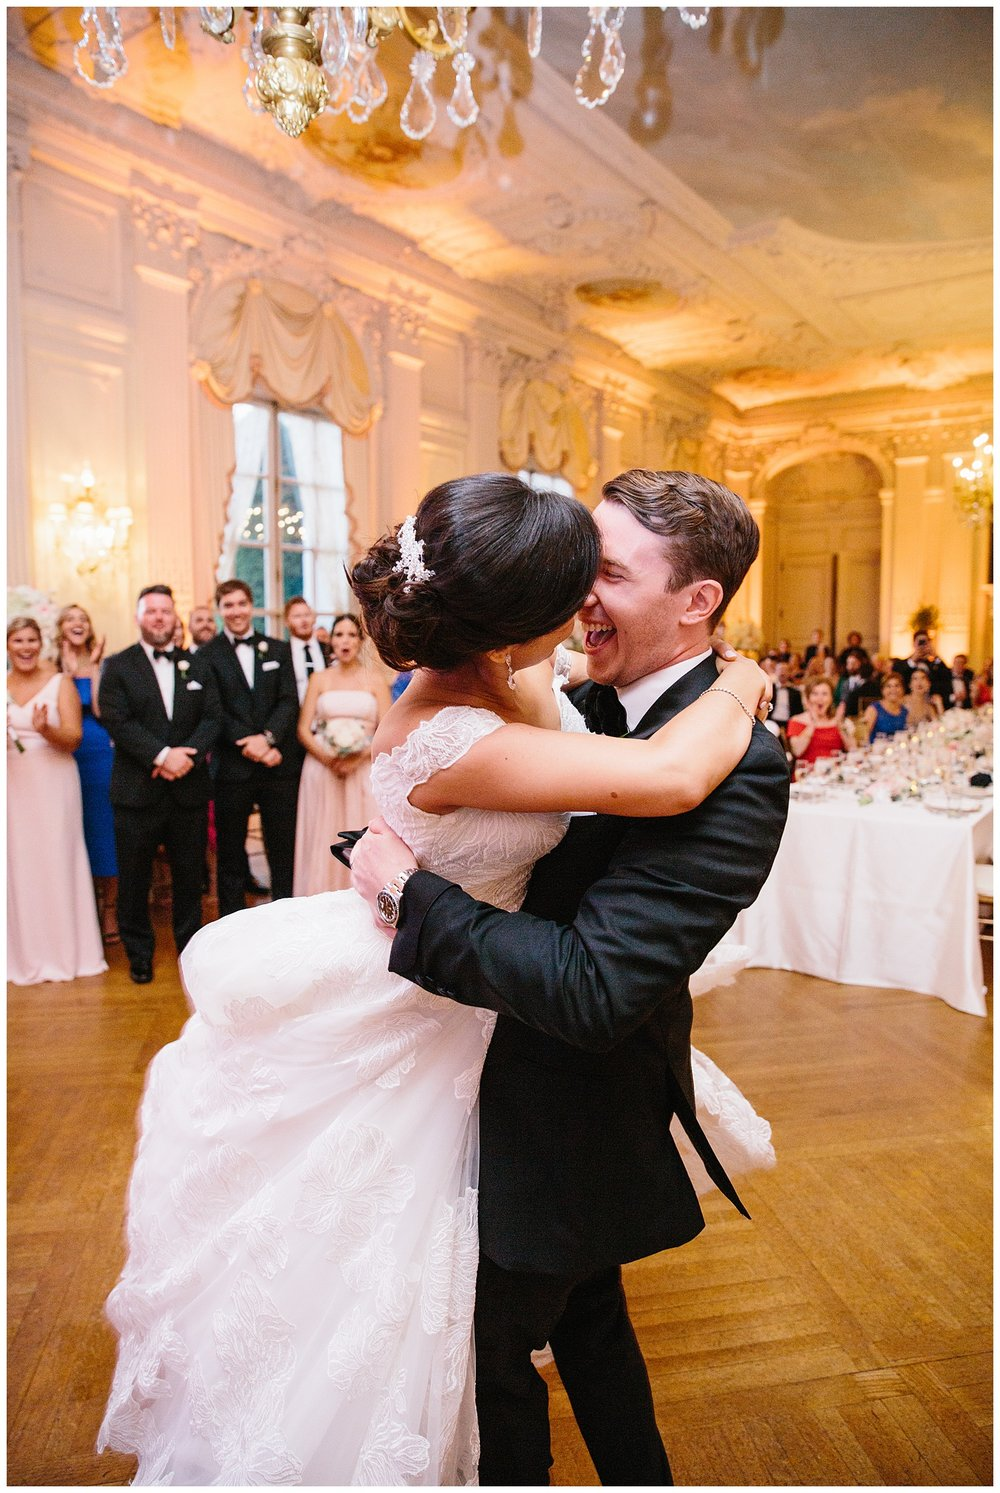 Stephen_Nathalie_Rosecliff_Mansion_Wedding_027.jpeg